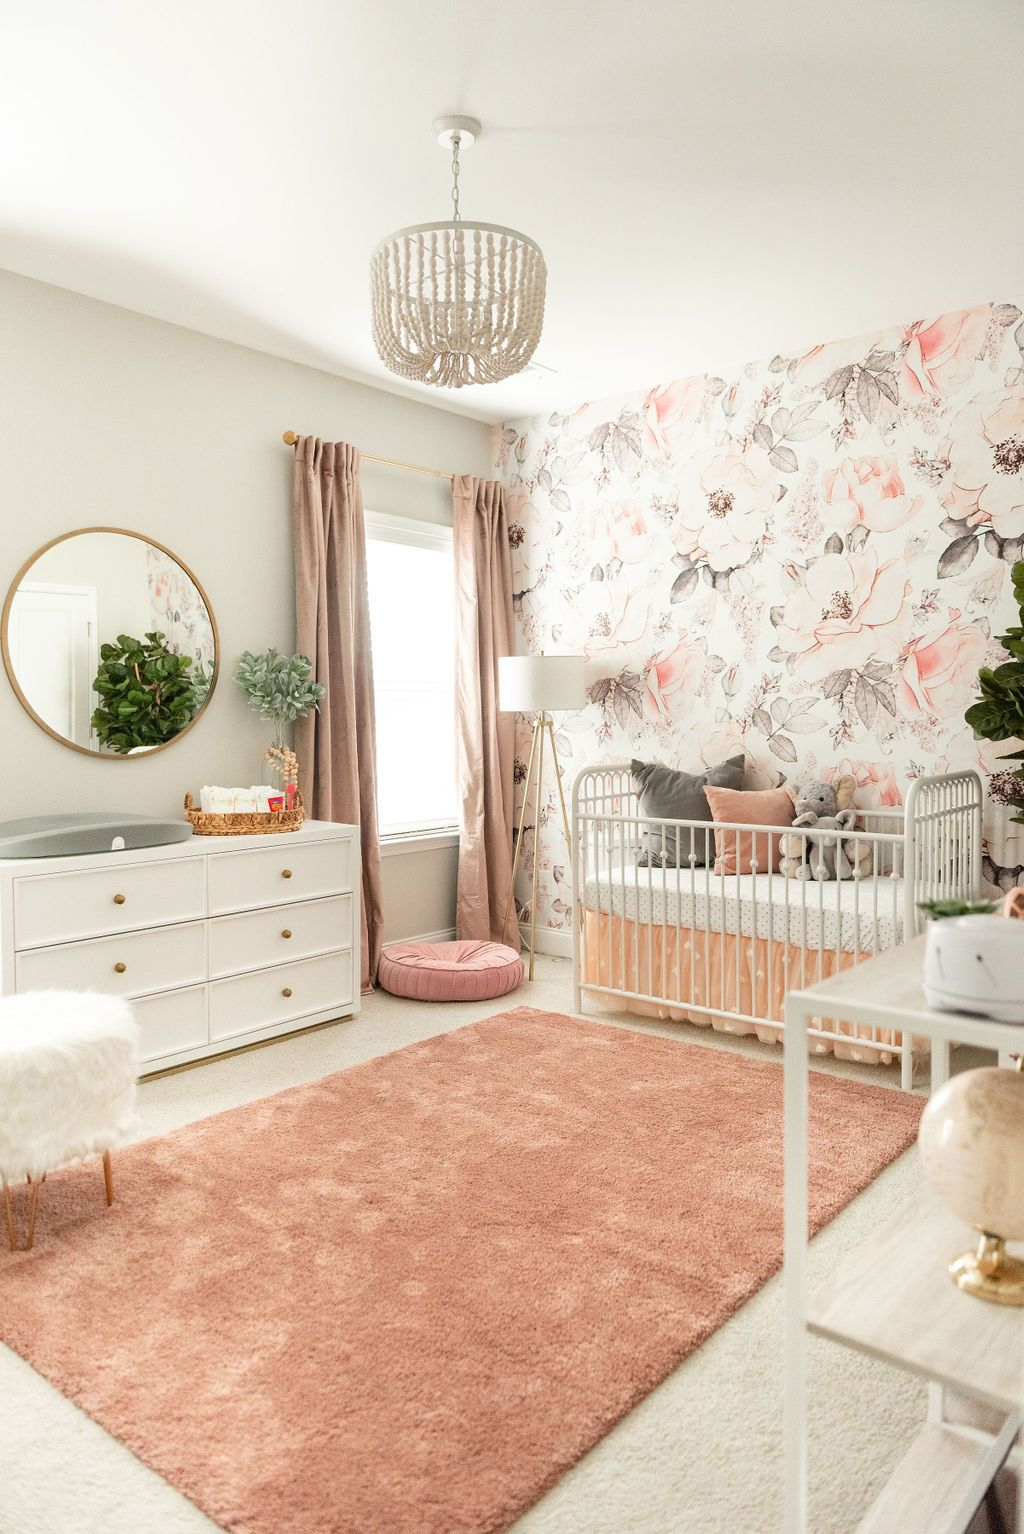 Baby Room Accessories: Baby Room Decor, Nursery Room